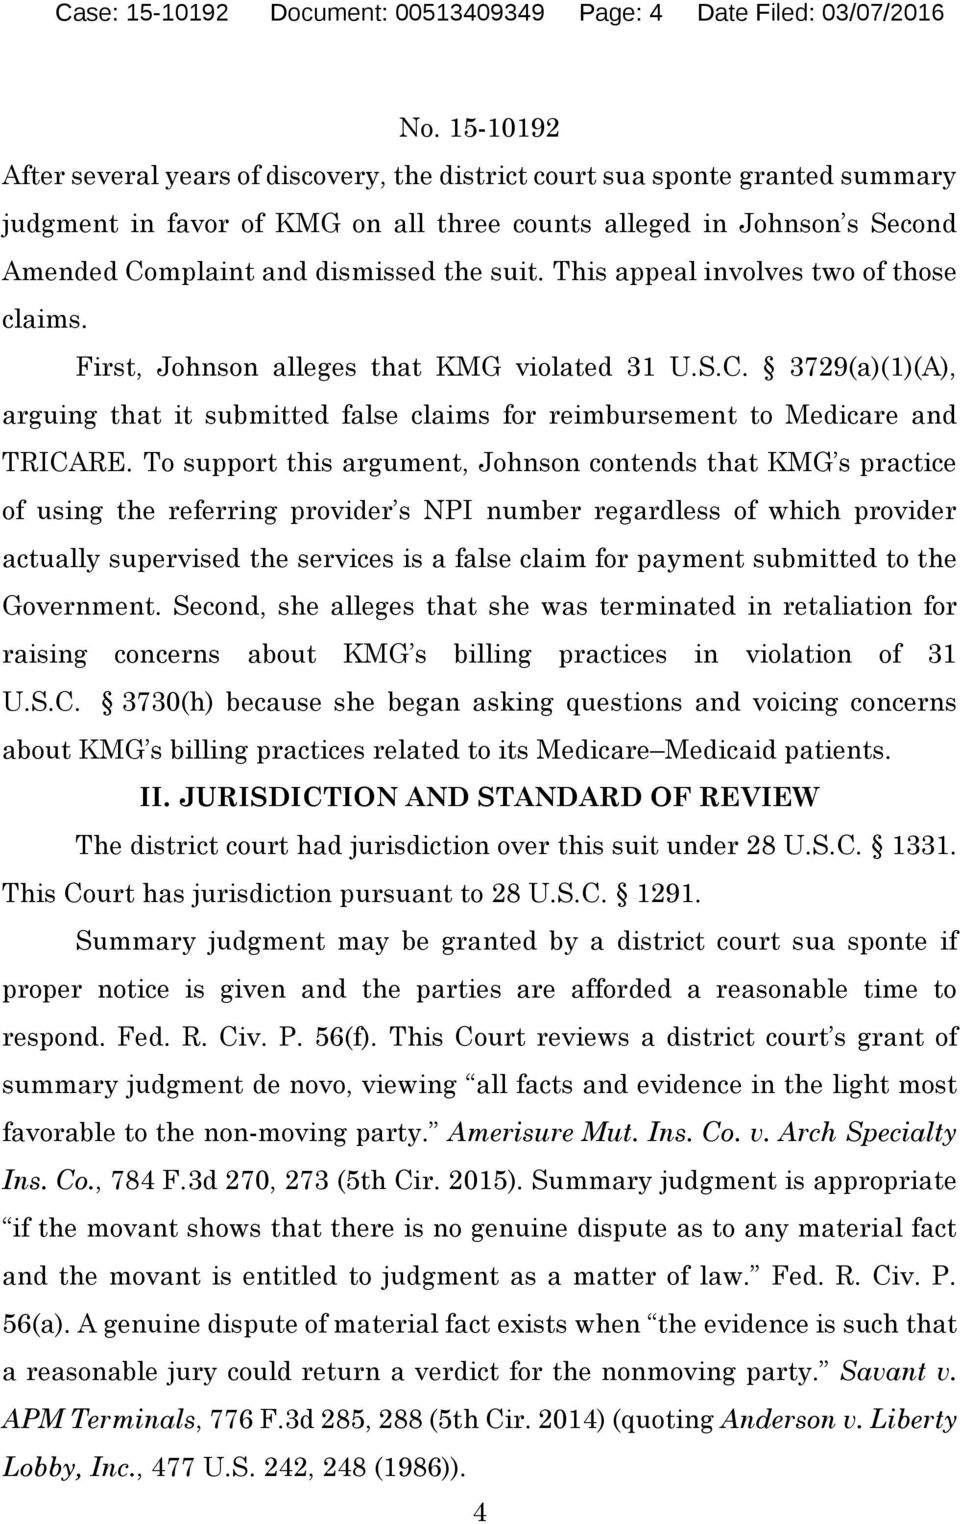 To support this argument, Johnson contends that KMG s practice of using the referring provider s NPI number regardless of which provider actually supervised the services is a false claim for payment